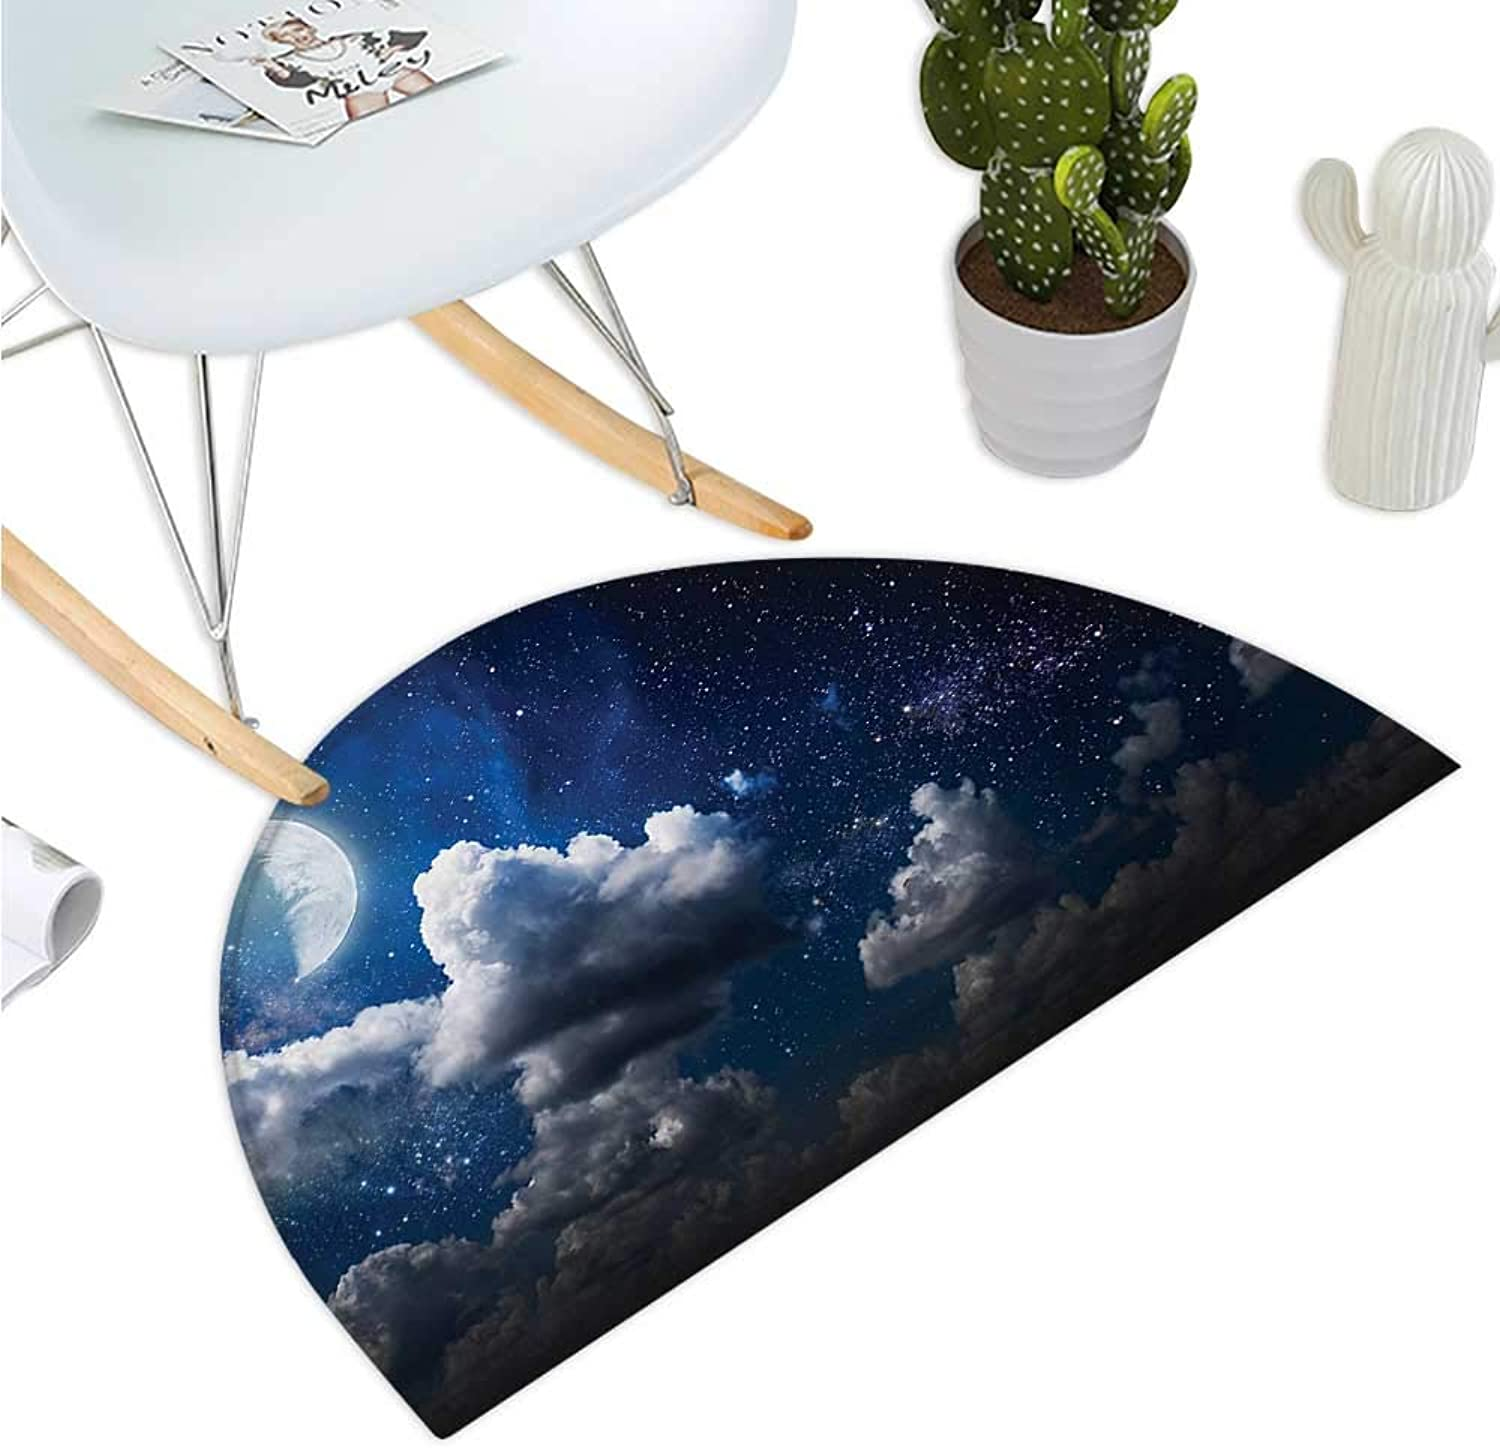 Clouds Half Round Door mats Celestial Solar Night Scene Stars Moon and Clouds Heaven Place in Cosmos Theme Bathroom Mat H 43.3  xD 64.9  Dark bluee White